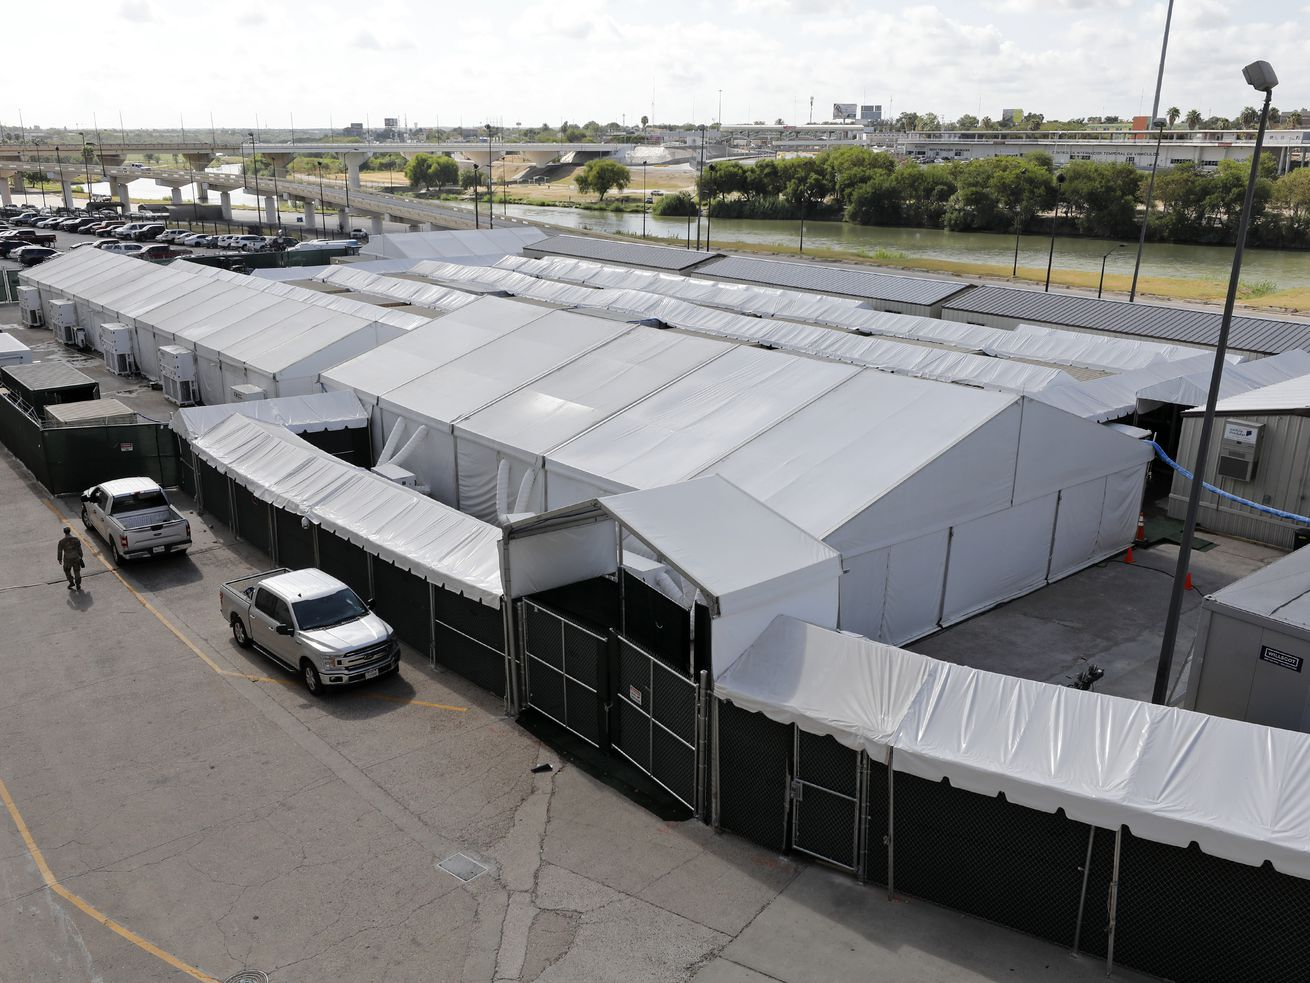 Tent courtrooms are set to open on the border. Can they solve America's immigration crisis?